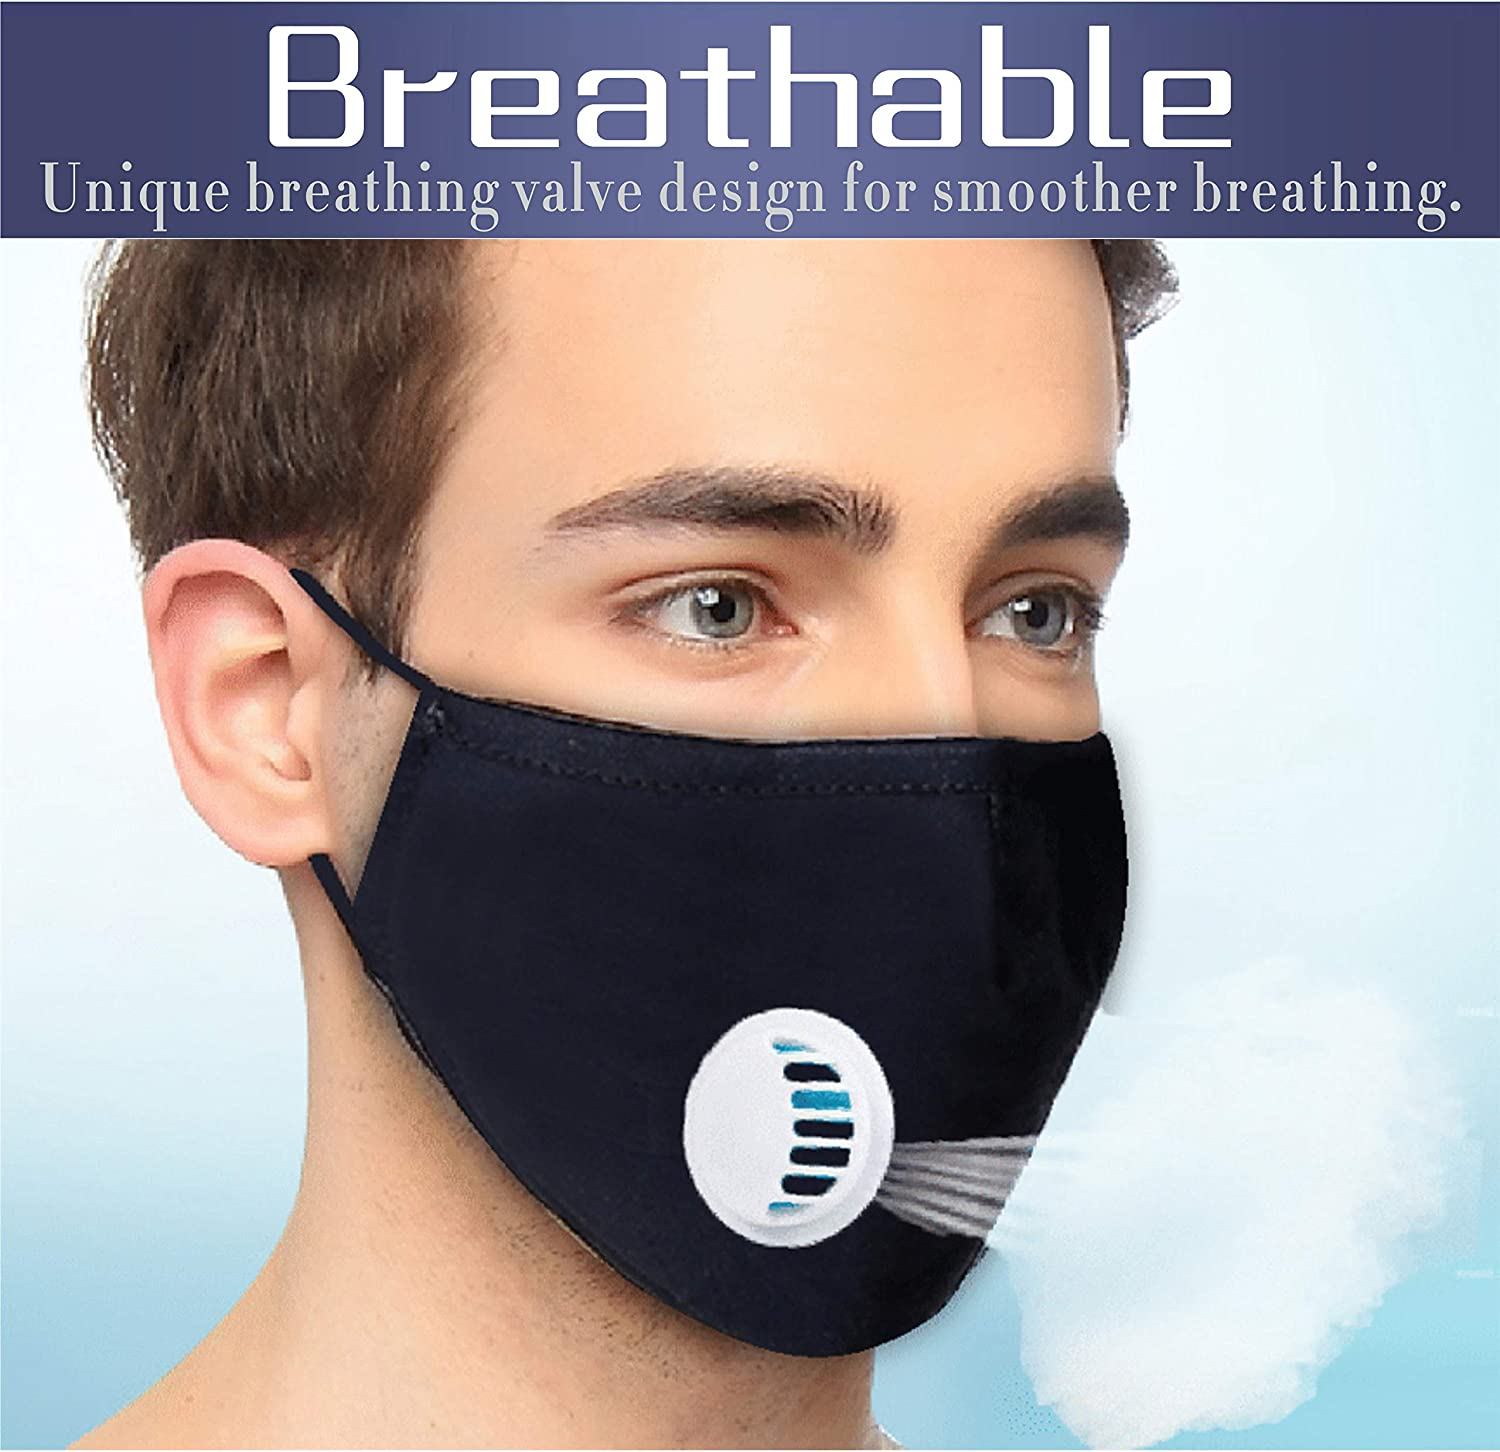 B086N448LR NP 3 pcs Cotton Face Cover with 6 pcs Actived Carbon Filter, Washable & Reusable Face Shield with Adjustable Earband, for Men 81X-h9GvRsL